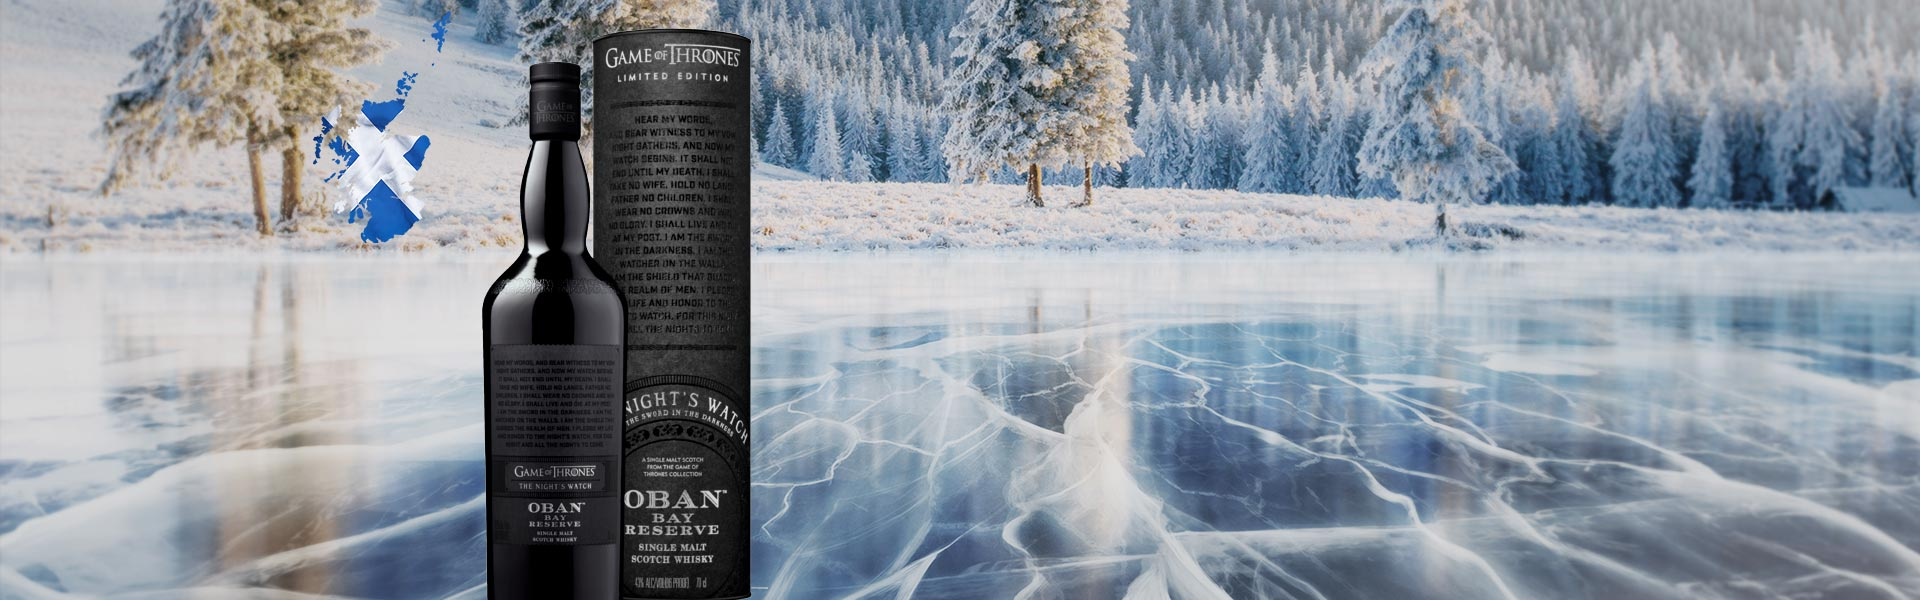 The Night's Watch Oban Whisky